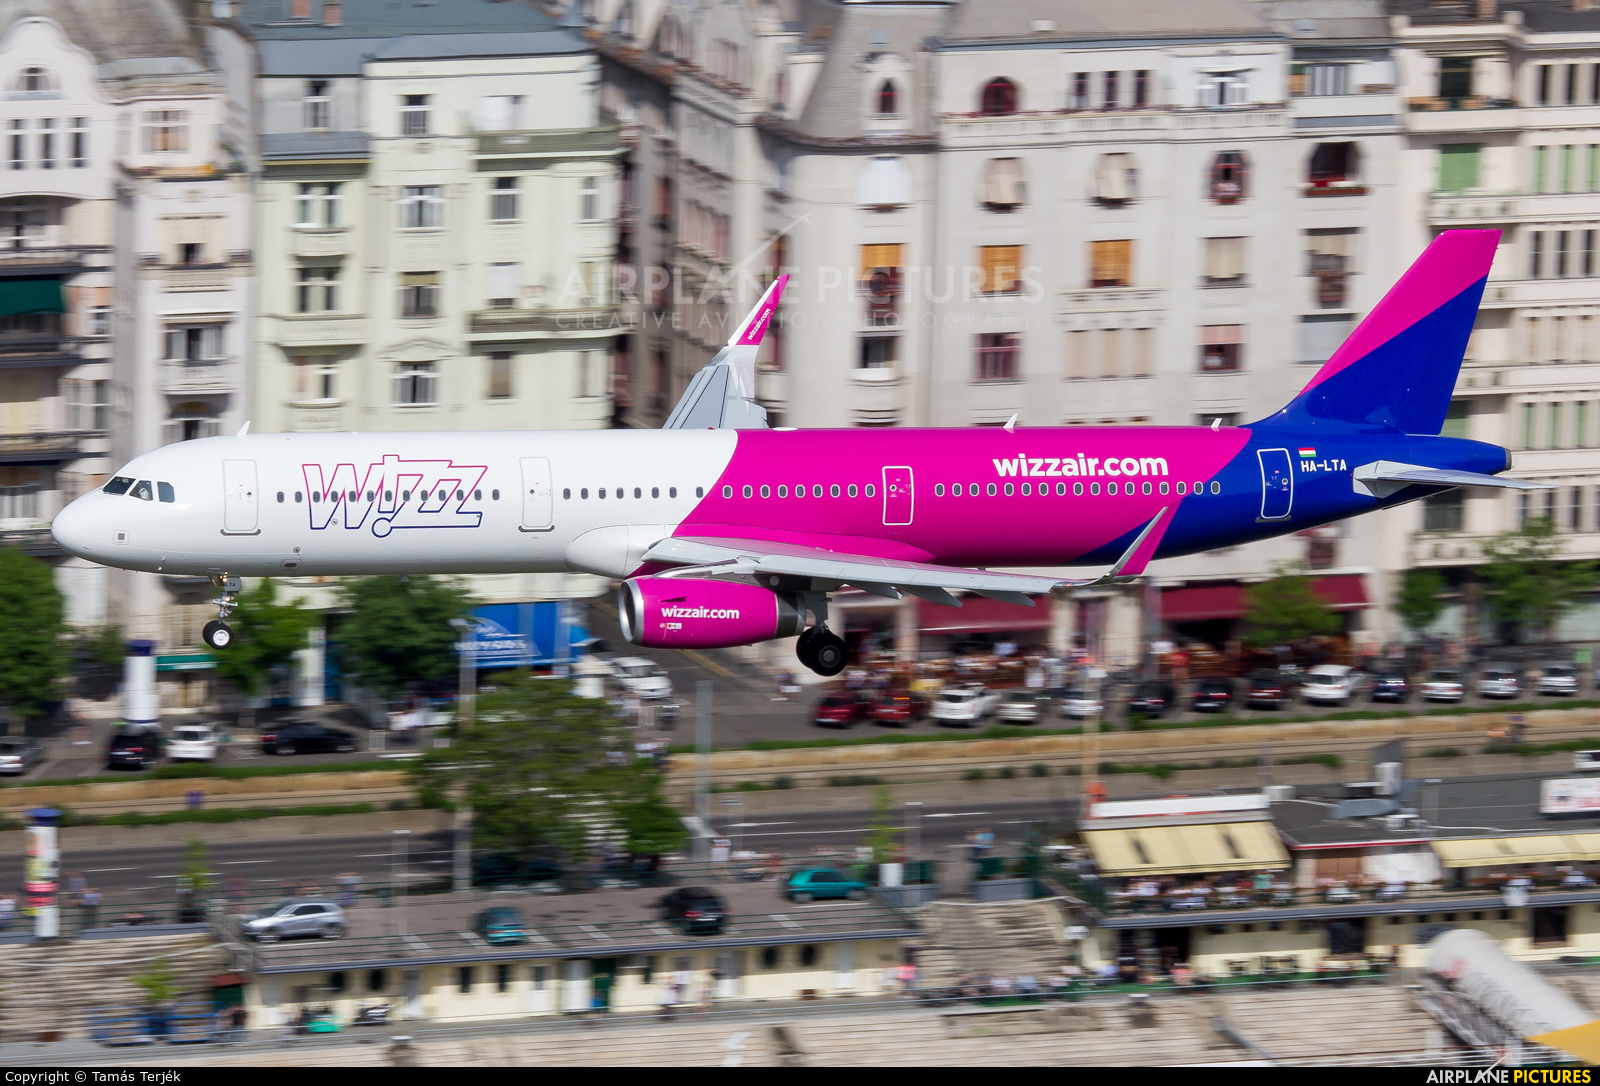 Wizz Air HA-LTA aircraft at Off Airport - Hungary